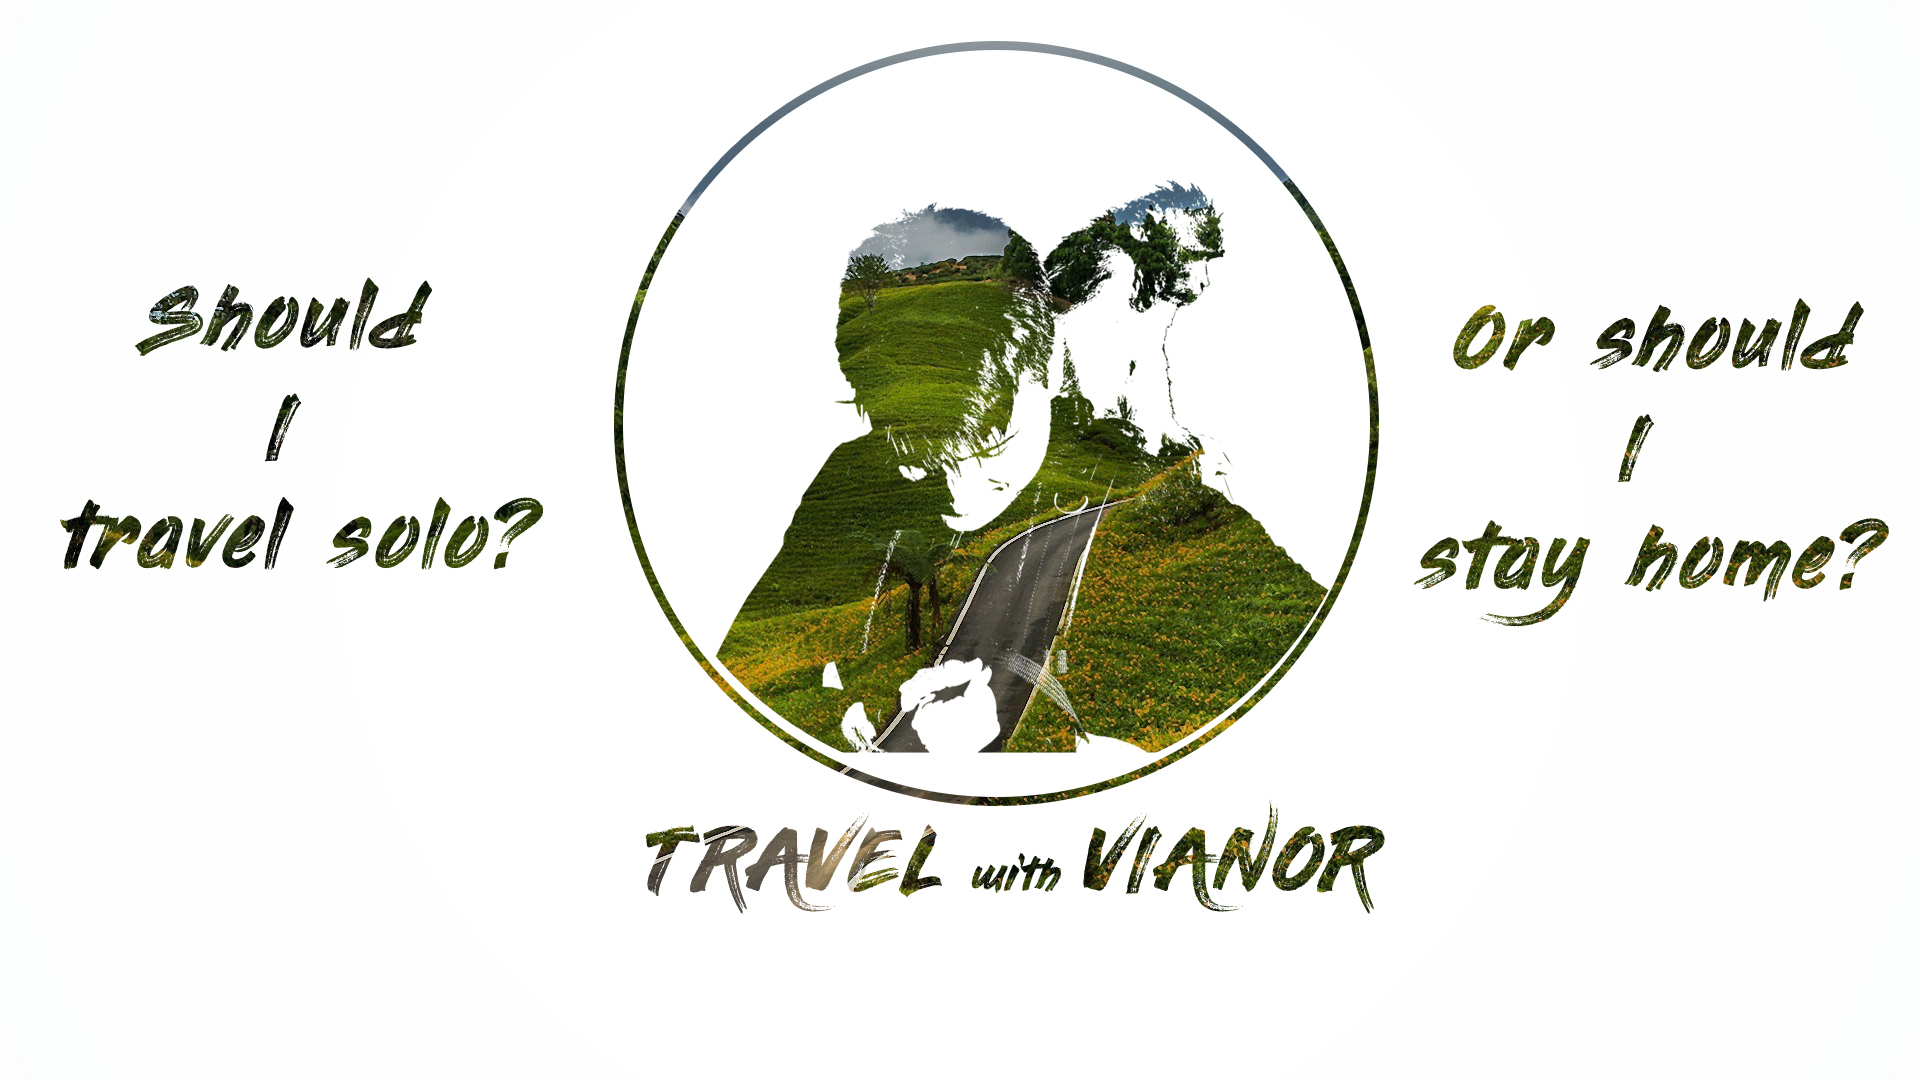 Travel with Vianor